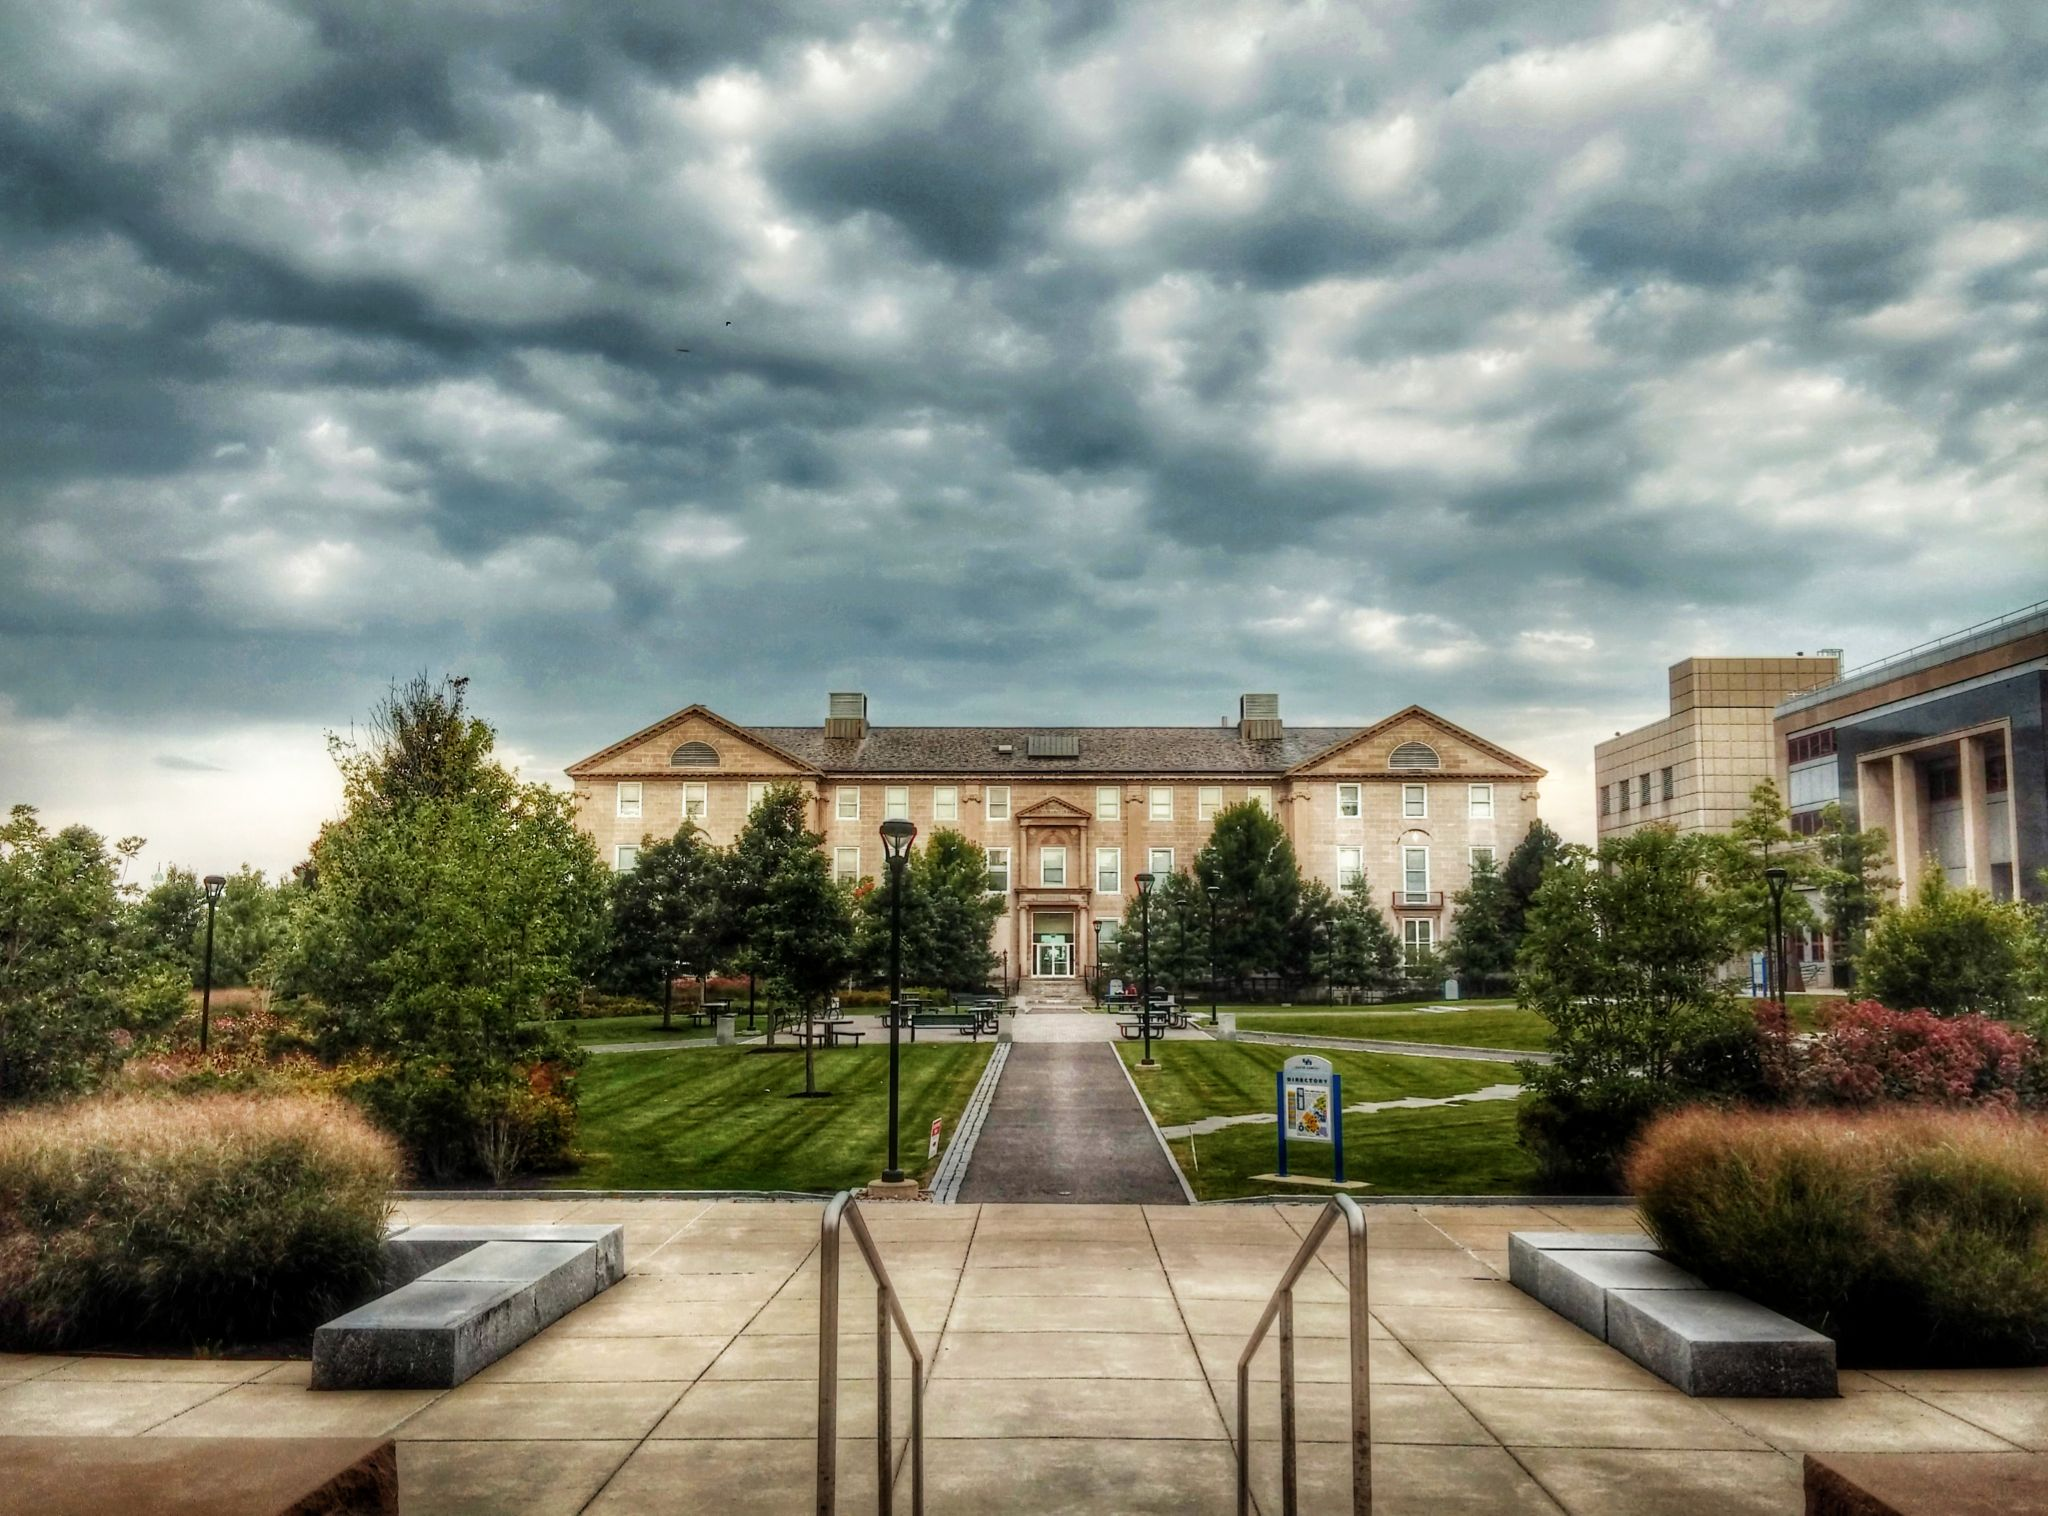 Foster Hall in UB South Campus by Sayem M A Shah